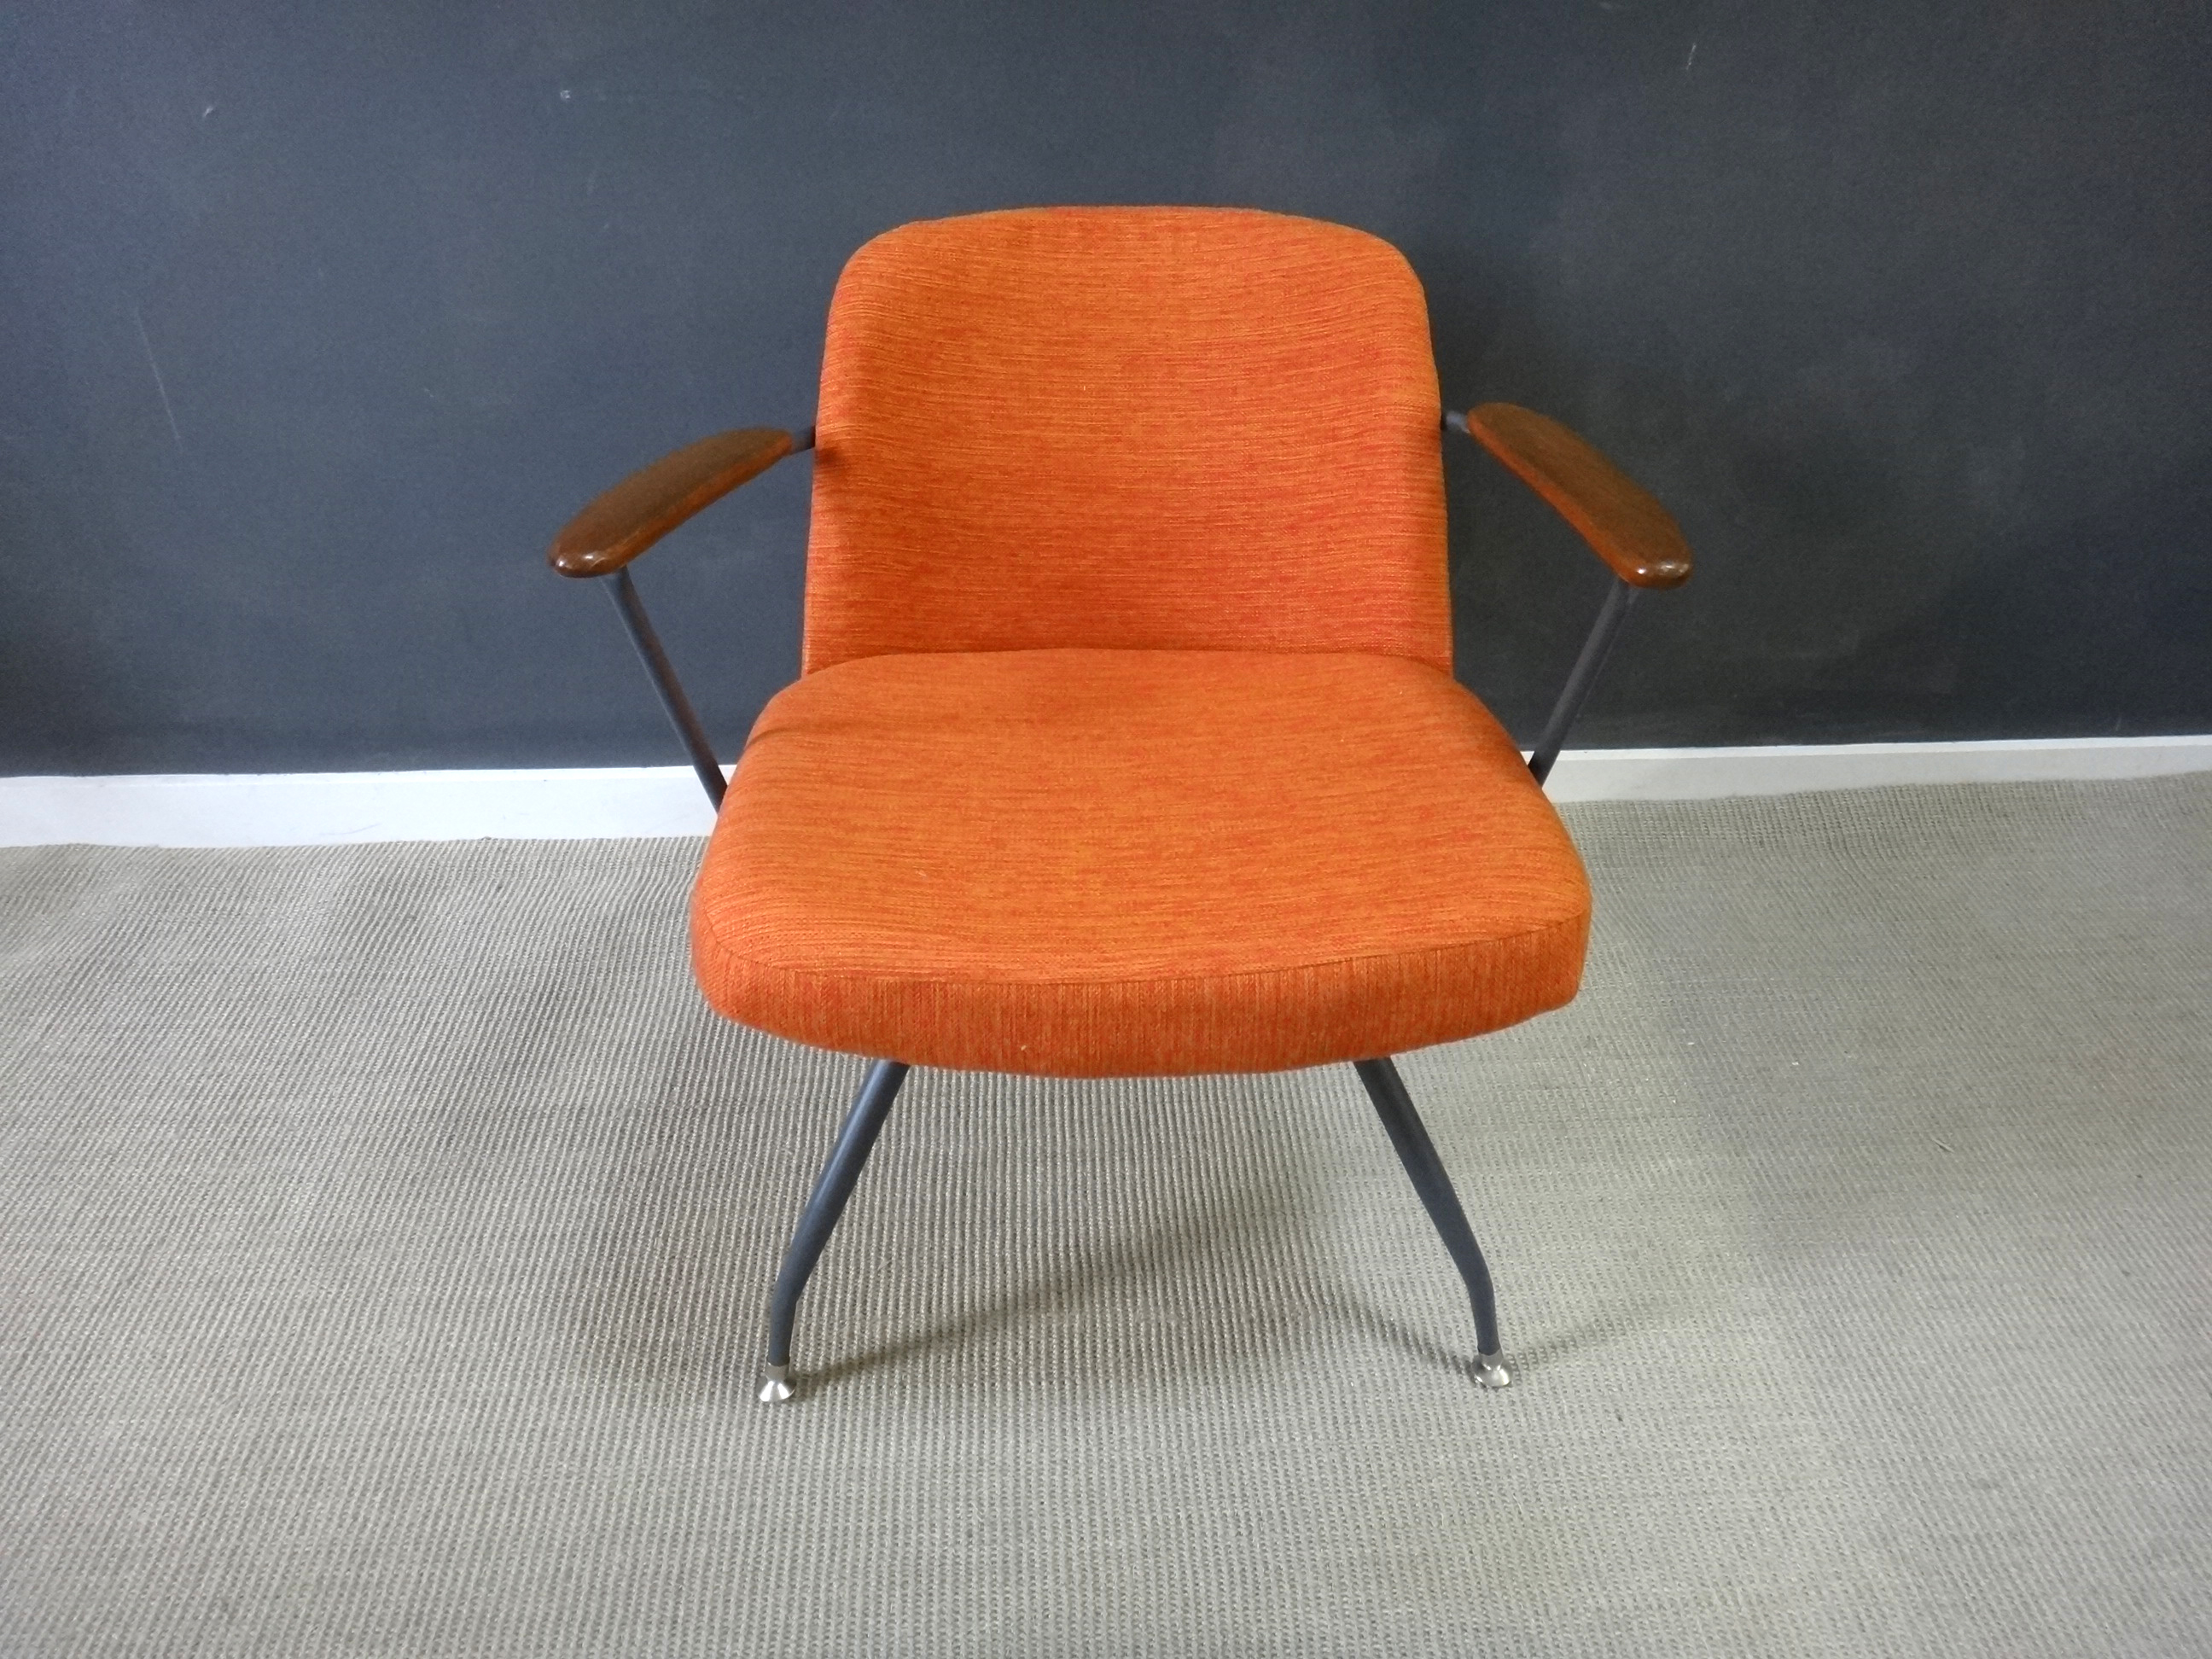 Pair Mid Century Upholstered Seng Chairs Pair Mid Century Upholstered Seng Chairs ... & Pair Mid Century Upholstered Seng Chairs - Retrocraft Design ...